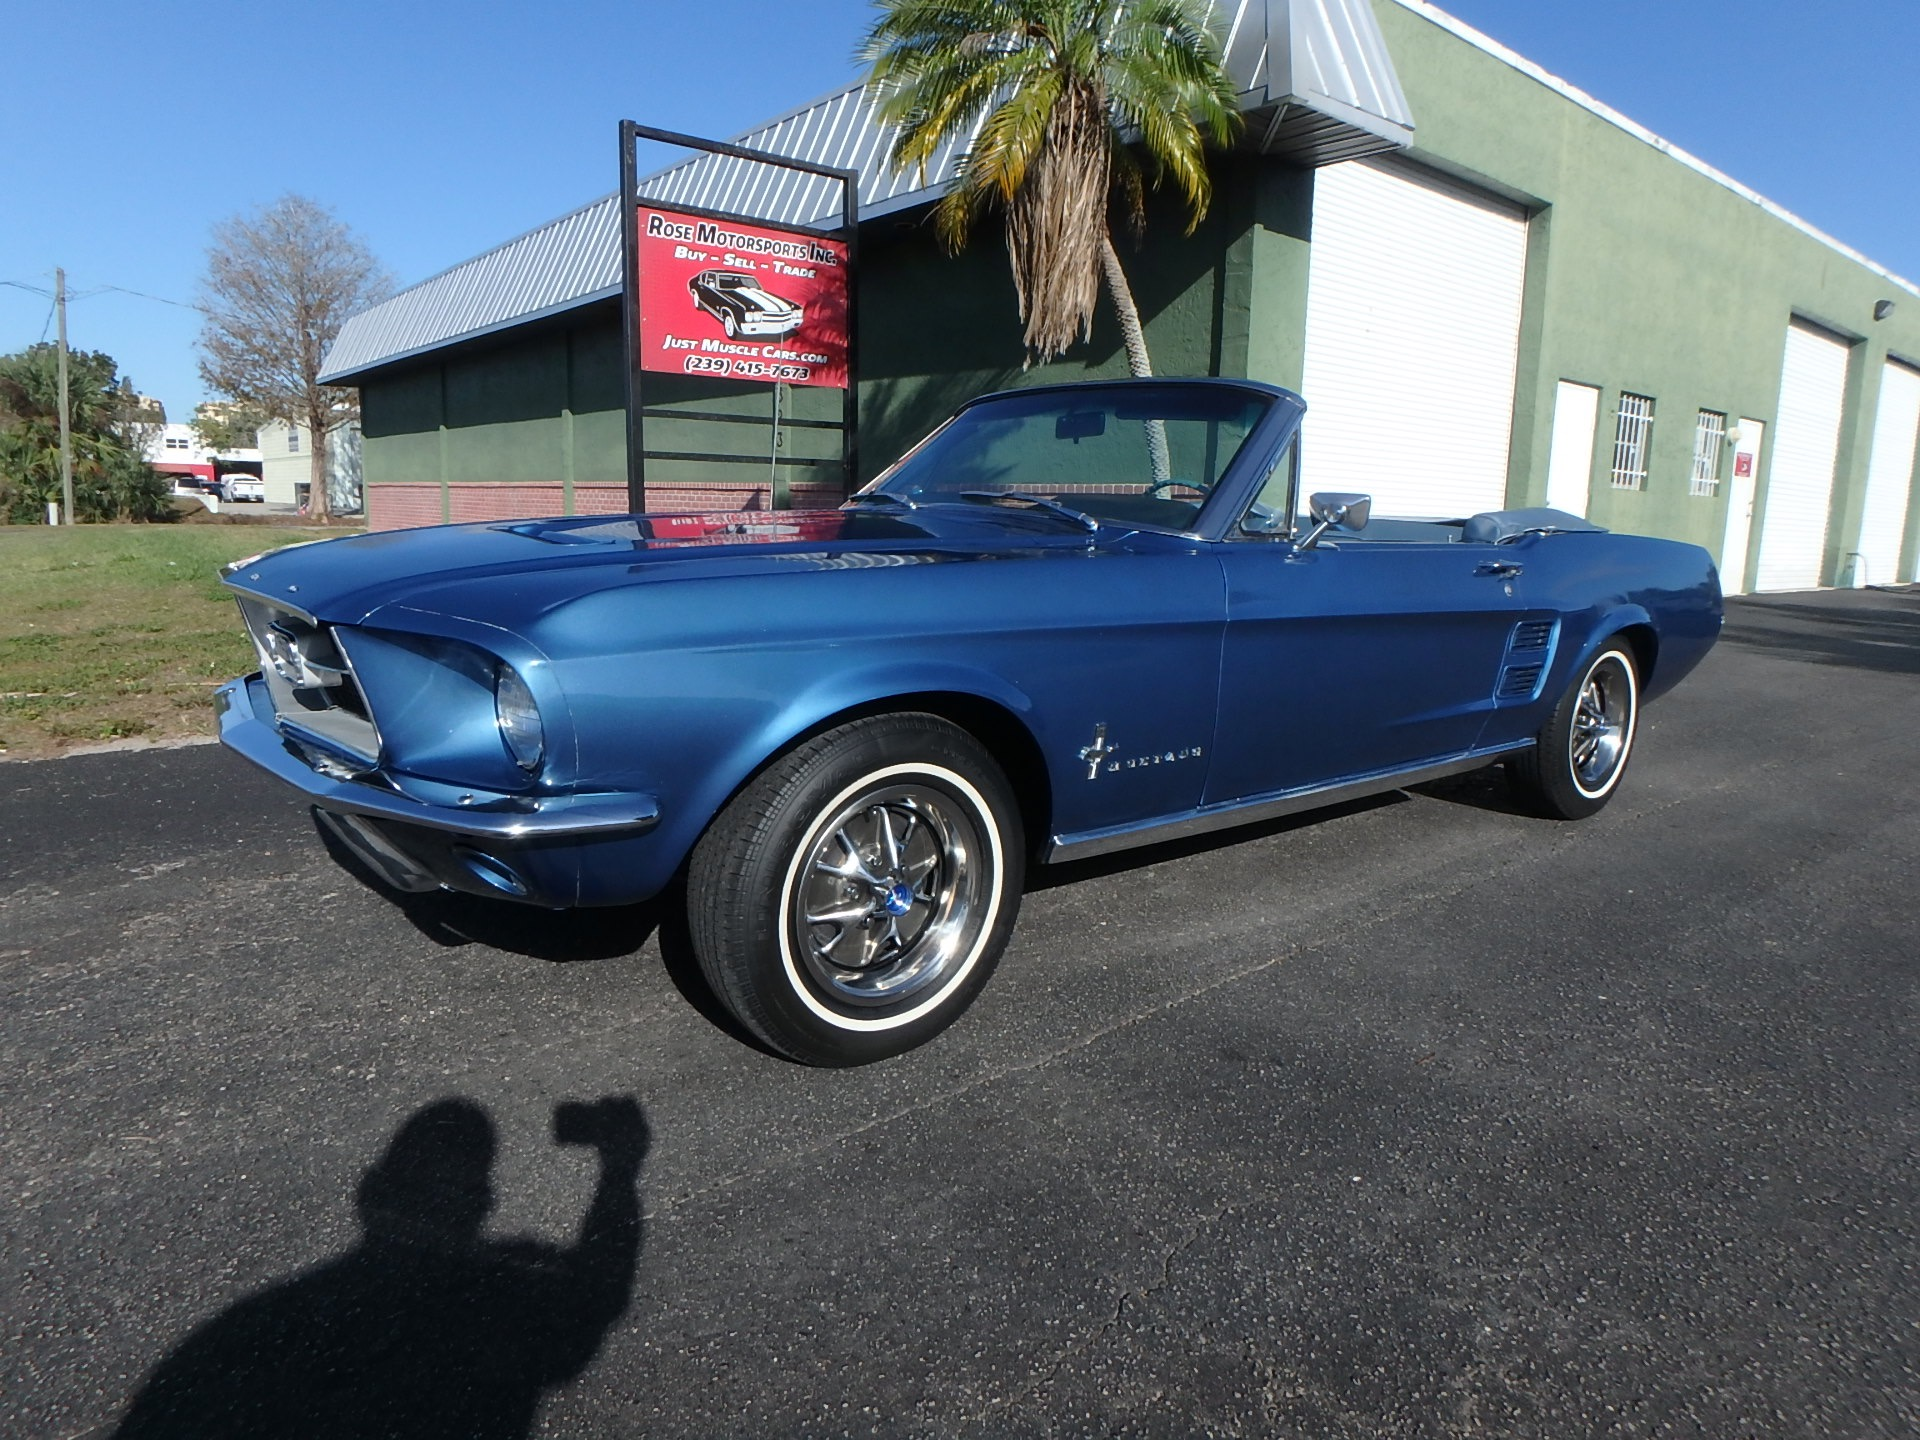 Used 1967 Ford Mustang Convertible For Sale 25 900 Rose Motorsports Inc Stock 2462